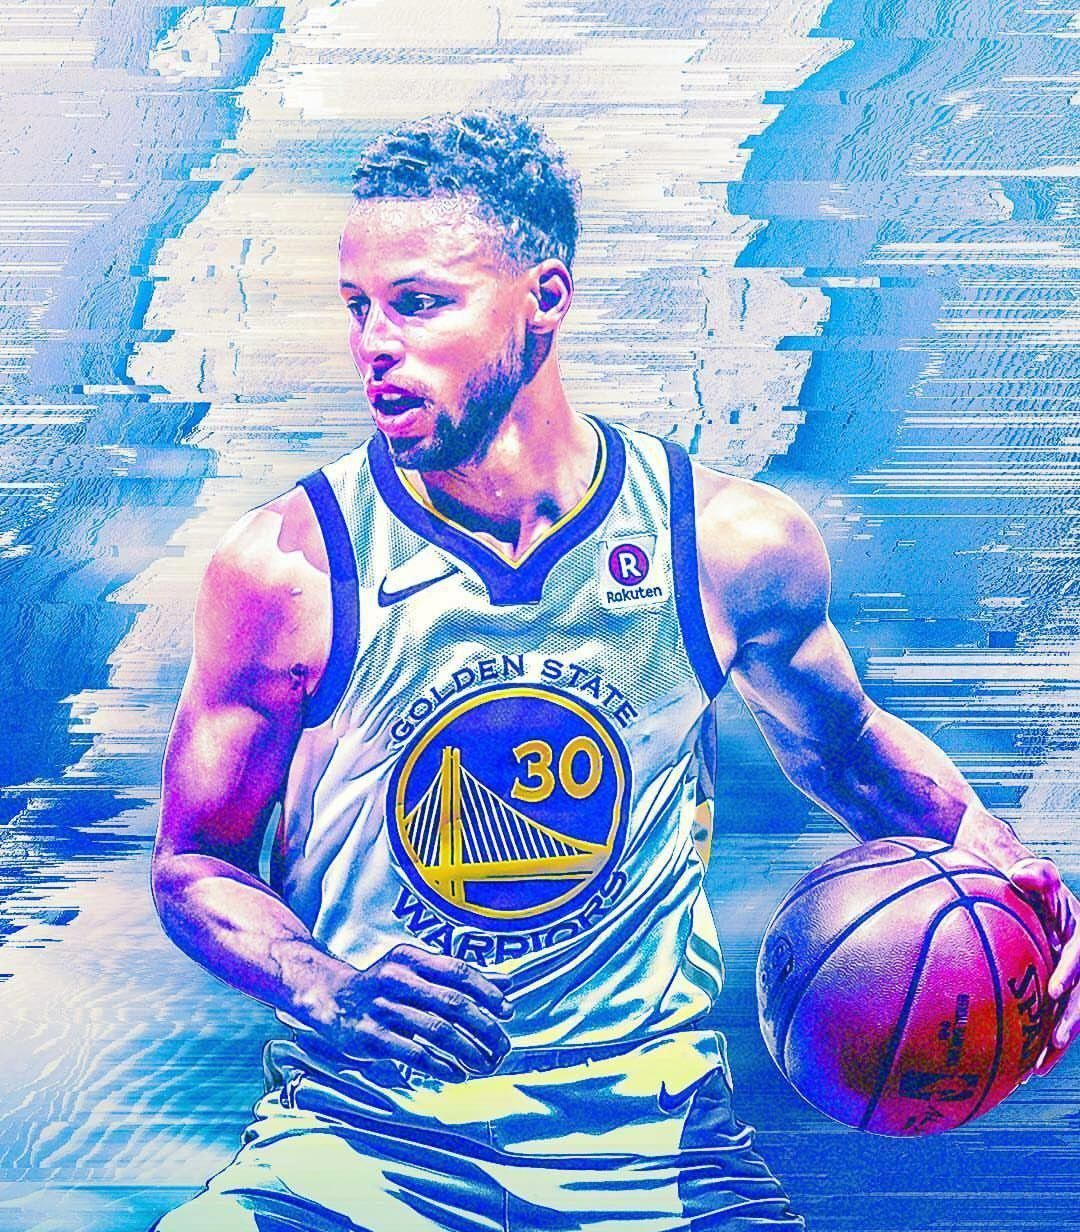 Stephen Curry Currybasketball Chinohillsbasketball Nba Stephen Curry Stephen Curry Basketball Stephen Curry